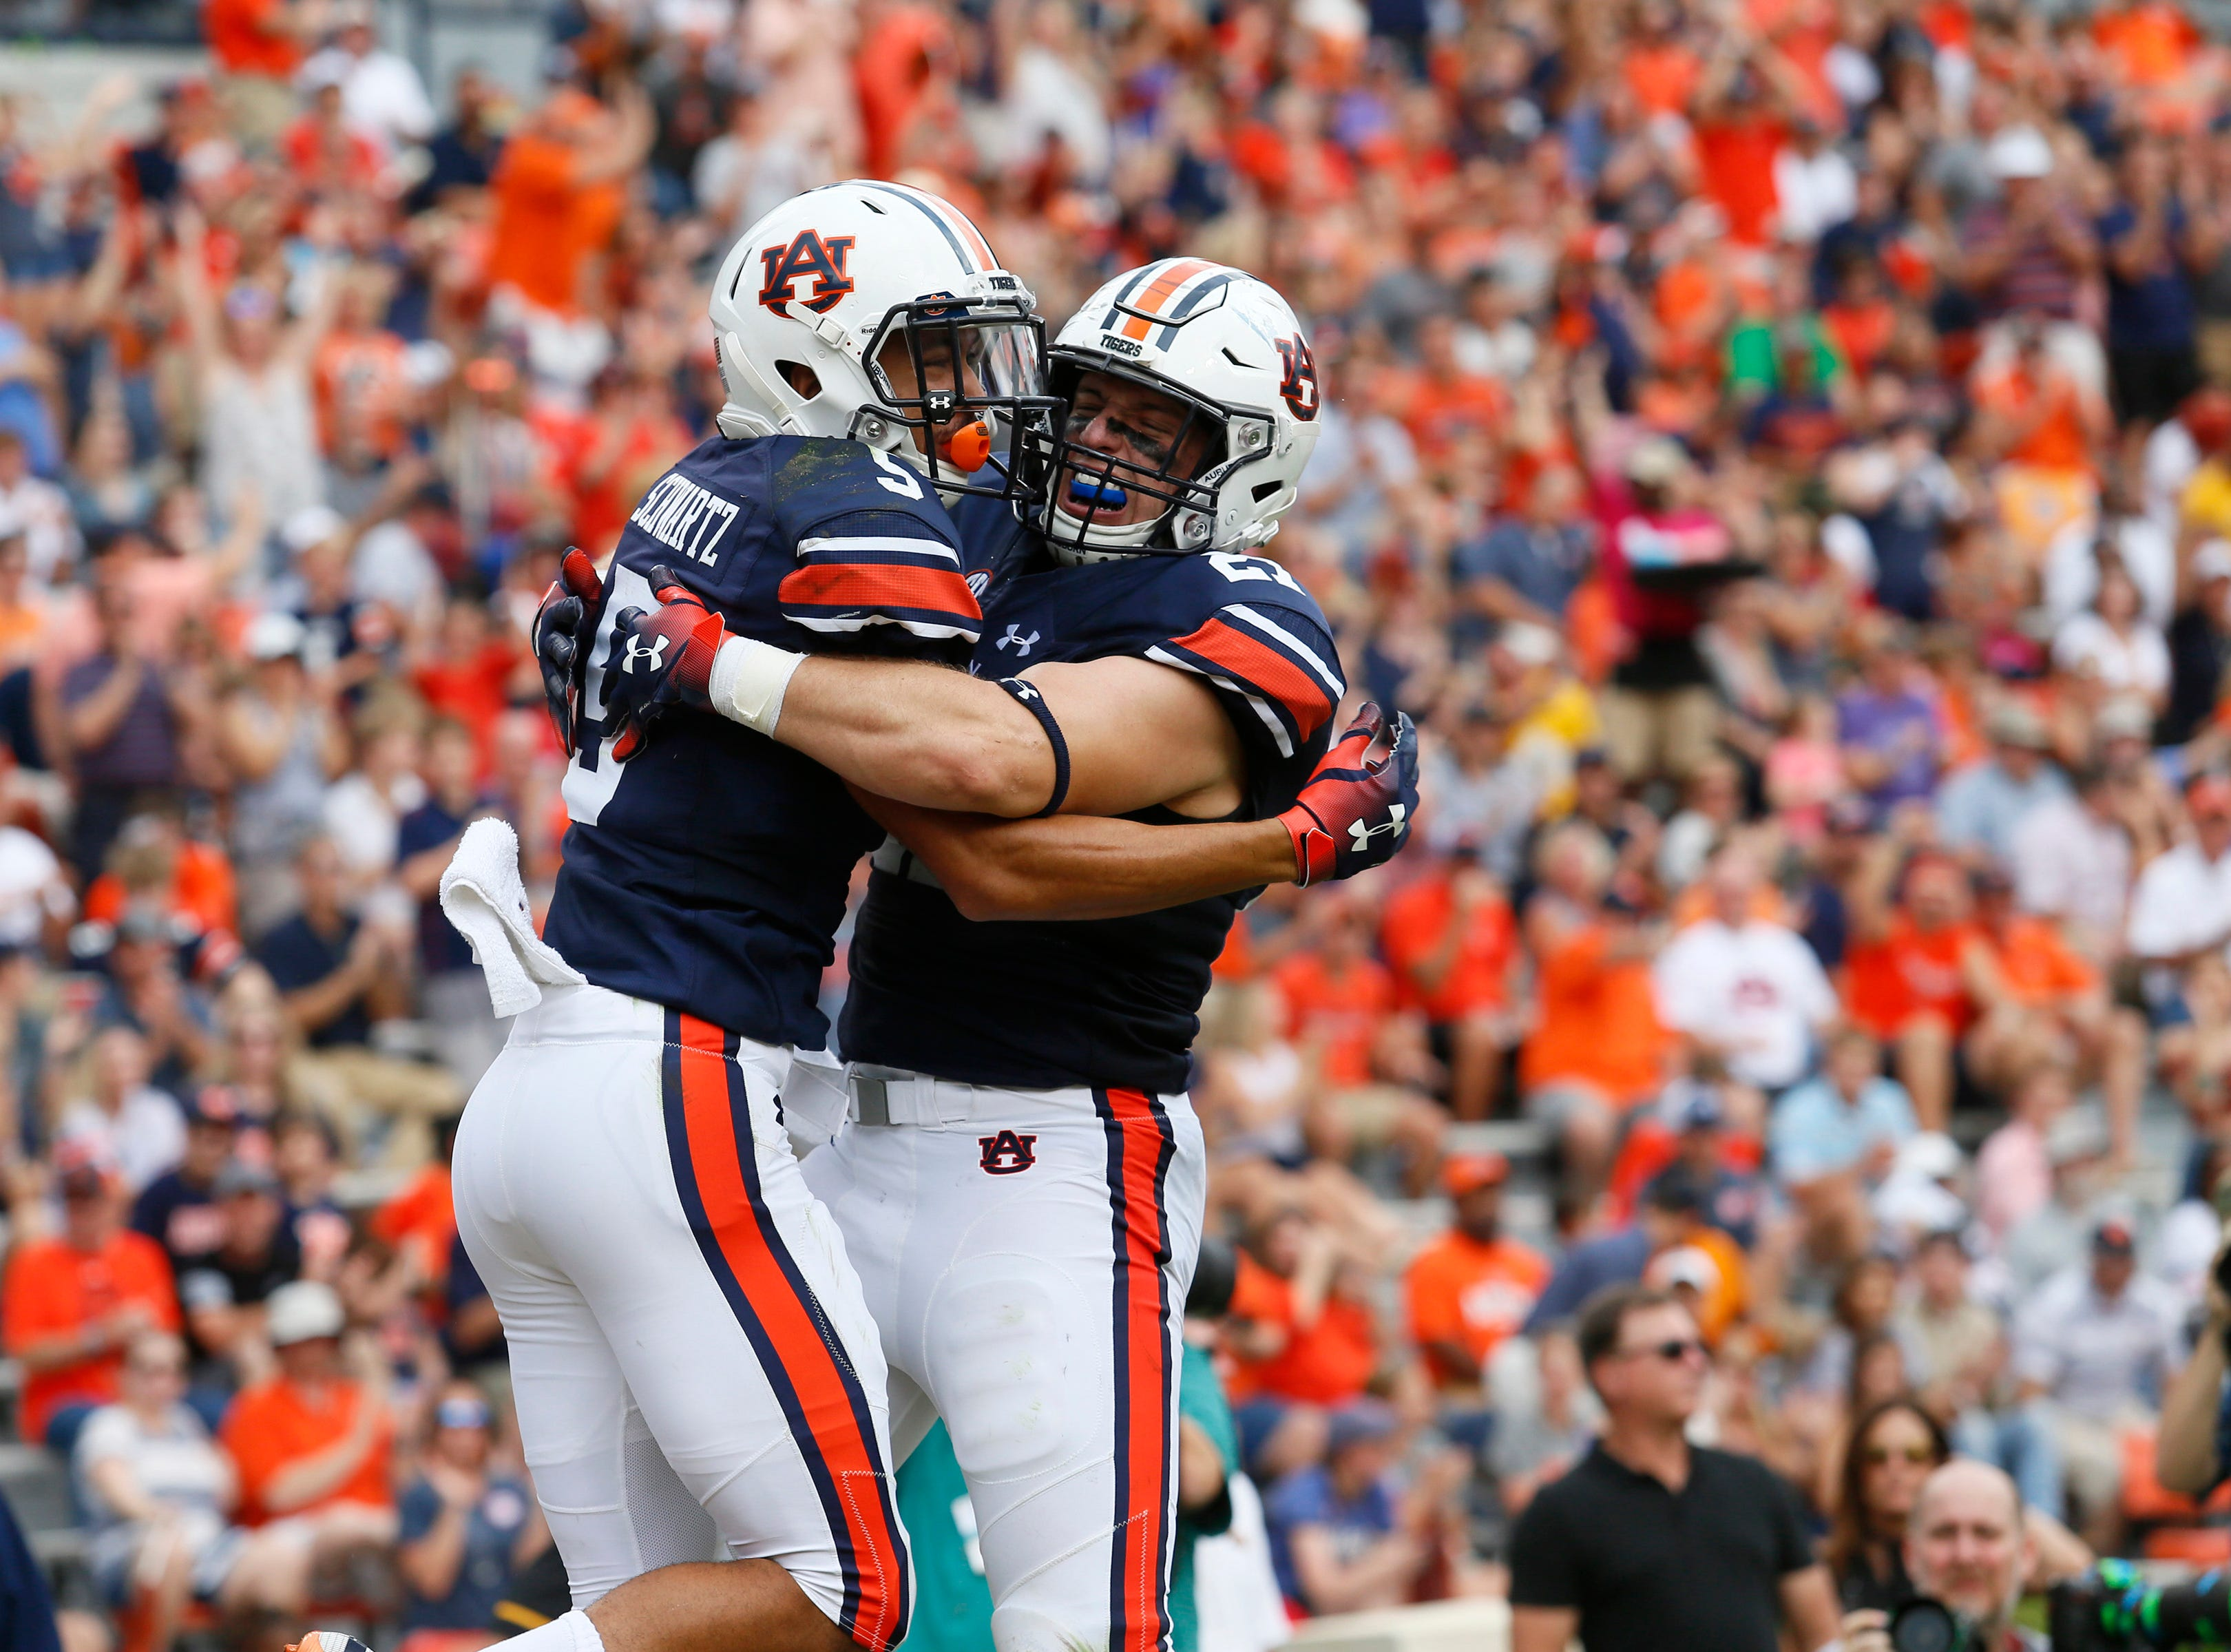 Auburn Tigers receiver Anthony Schwartz (5) celebrates with fullback Chandler Cox (27) after scoring a touchdown against the Southern Miss Golden Eagles during the second quarter at Jordan-Hare Stadium.